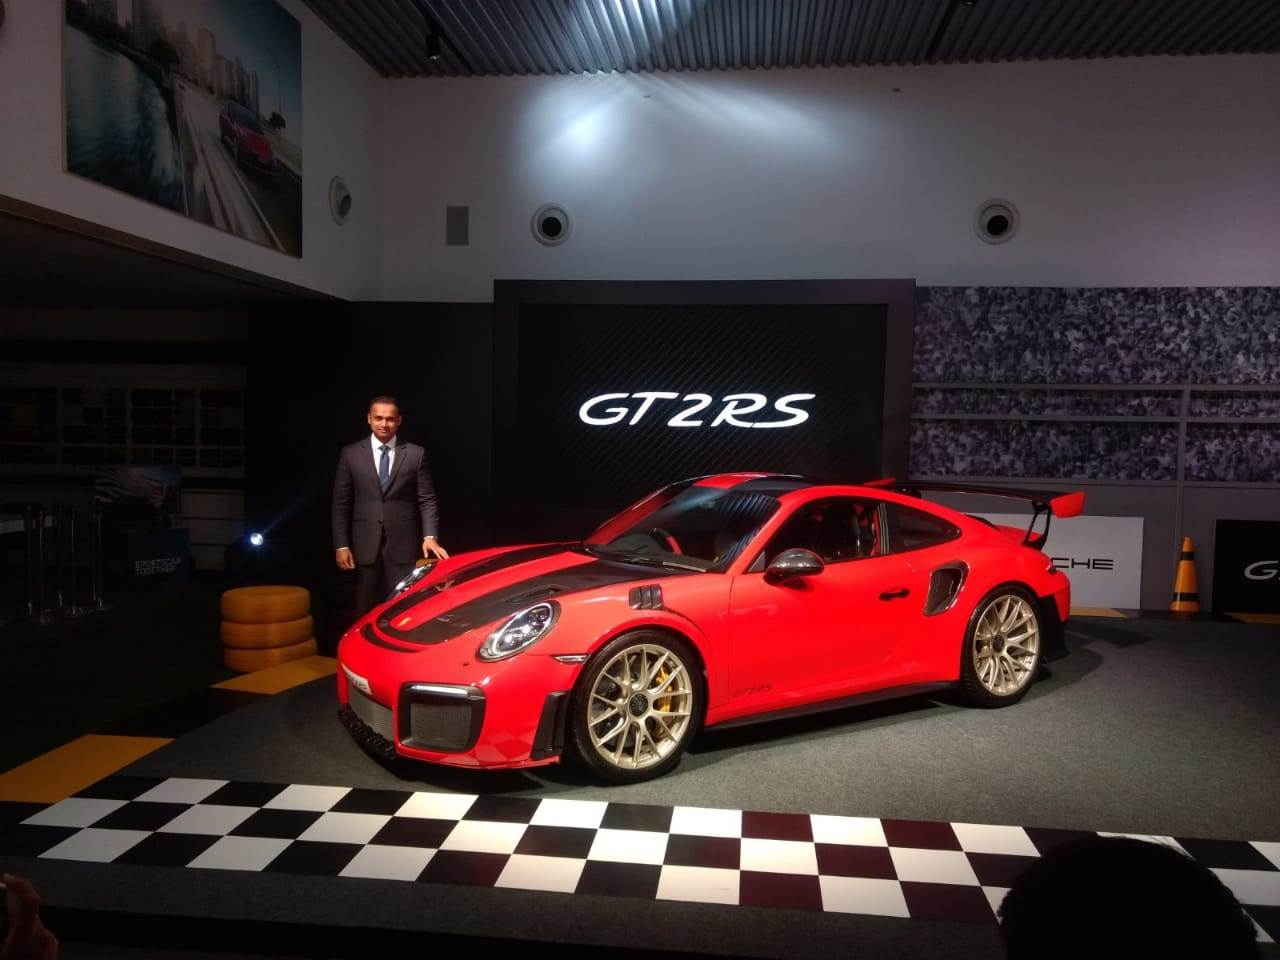 2018 Porsche 911 GT2 RS launched at Rs 3.88 crore